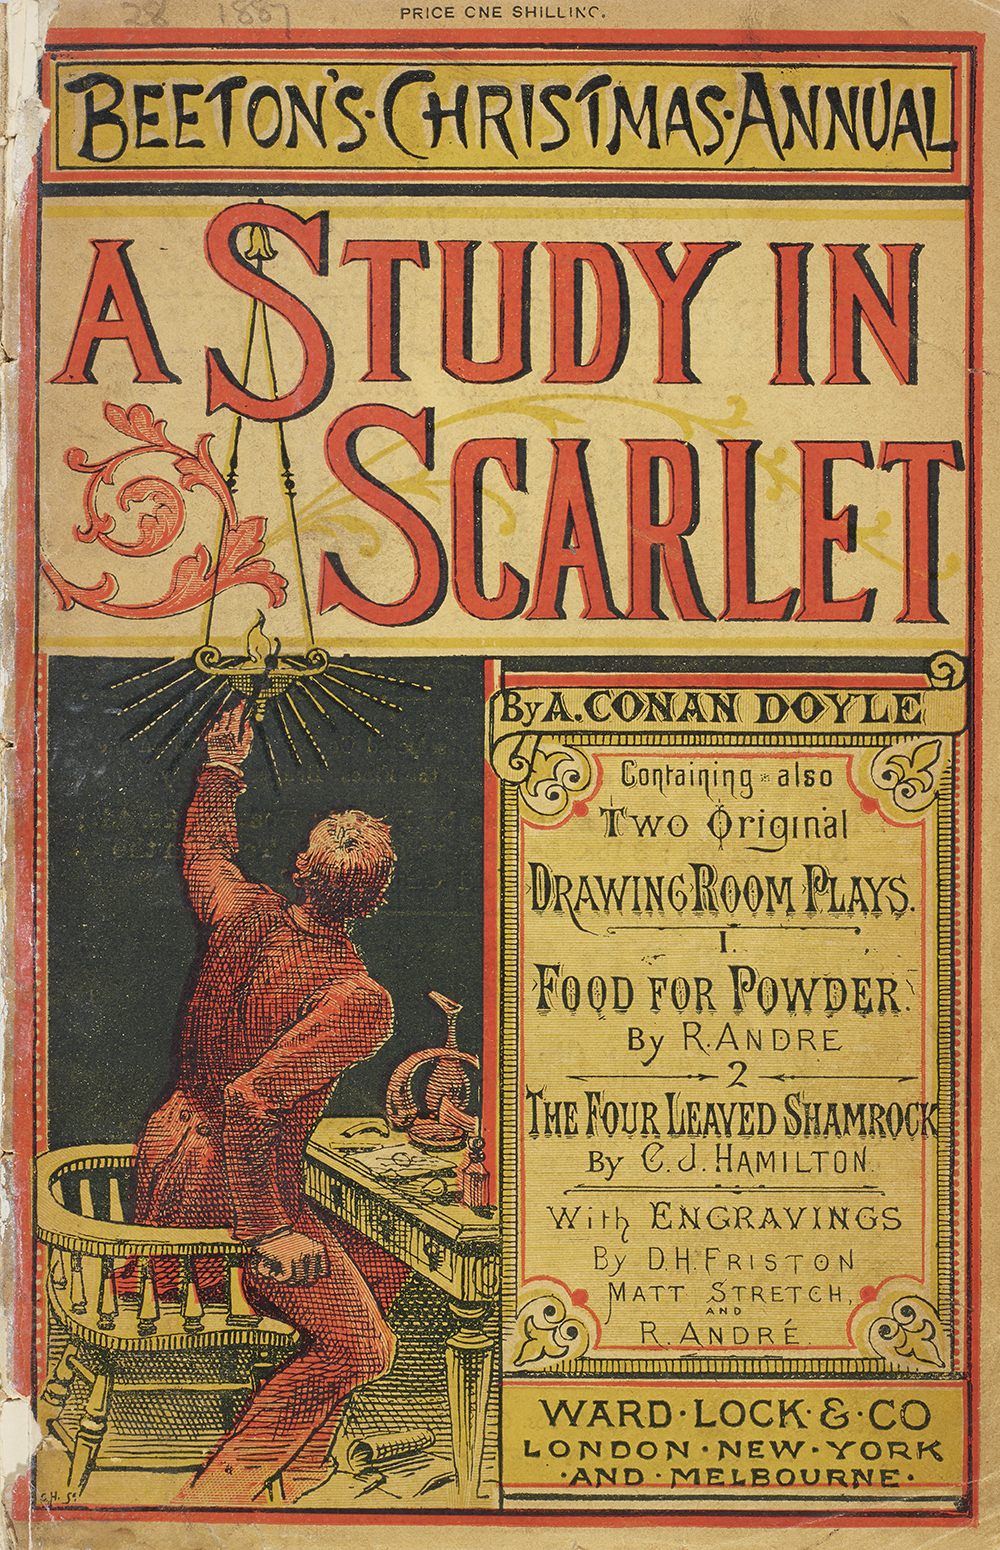 A Study in Scarlet in Beeton's Christmas Annual, 1887. Oxford University, Bodleian Library.